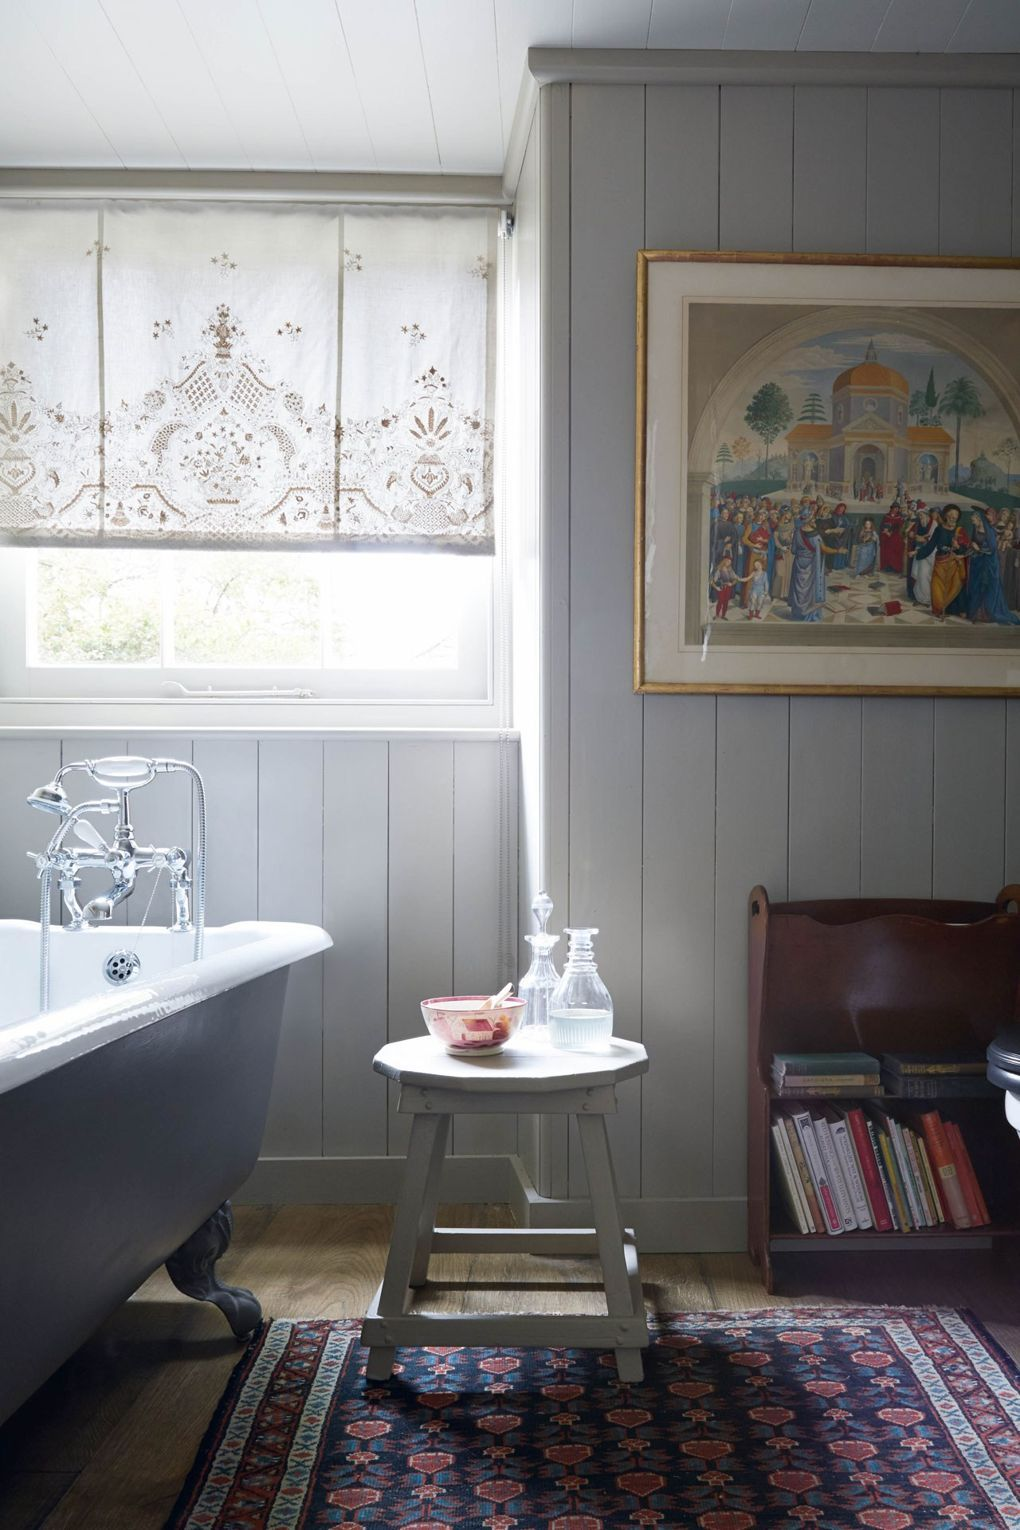 A reading roomcumguestcottage full of hidden surprises and witty